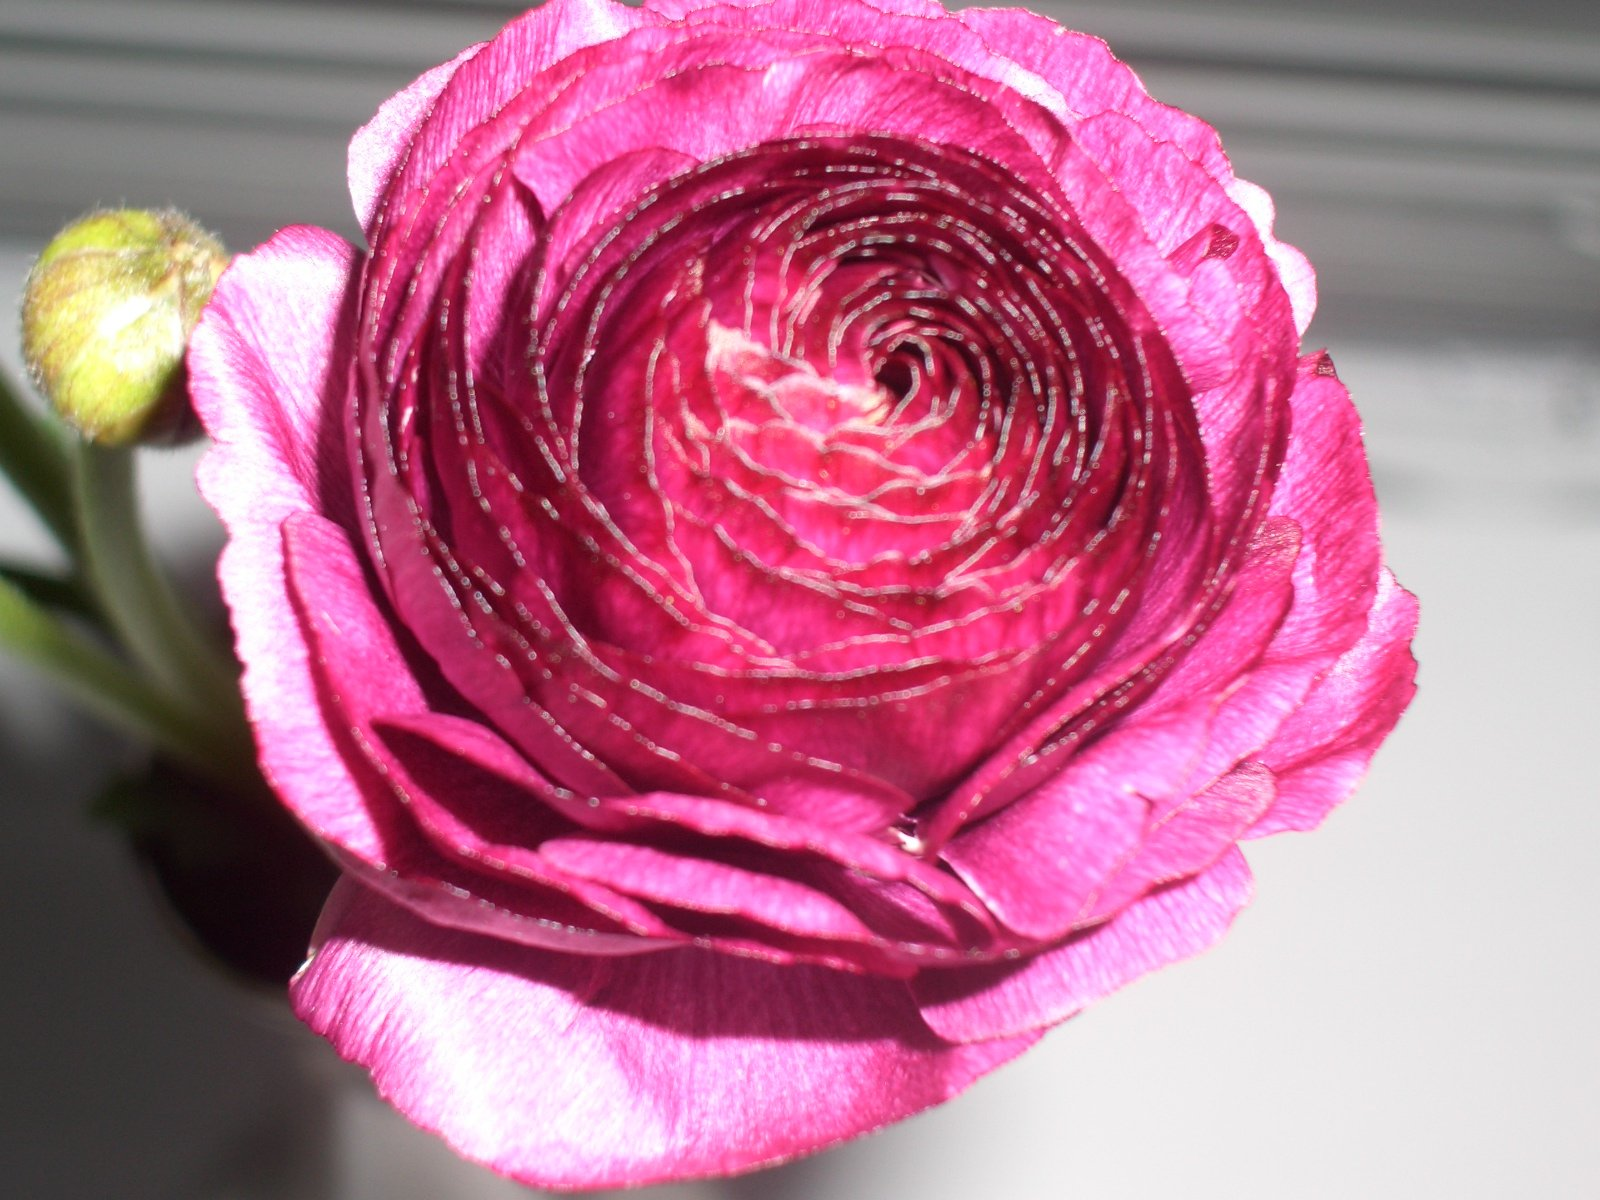 How to care for Ranunculus flowers